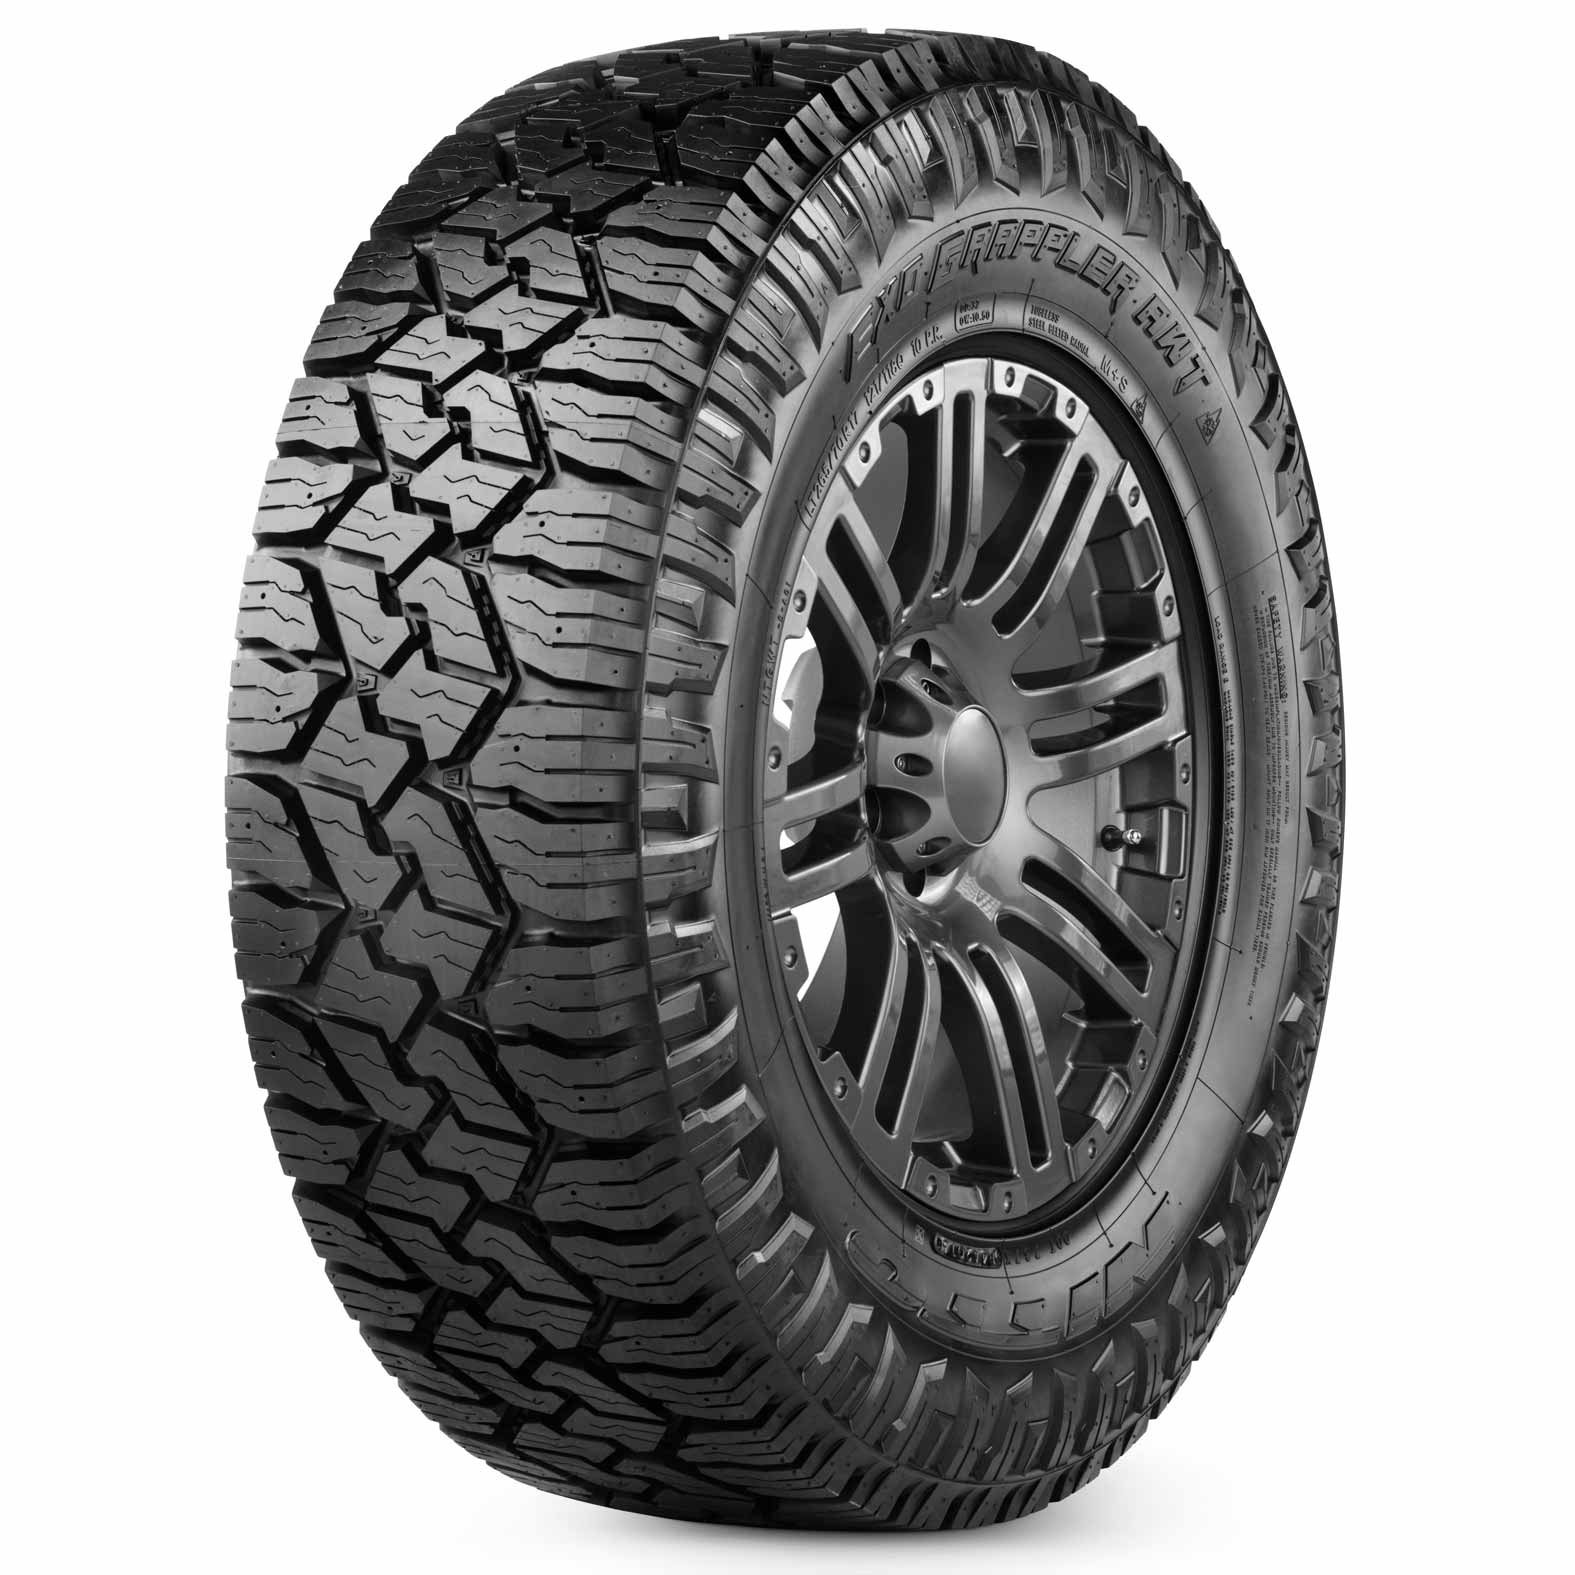 Kal Tire - All Weather Tires